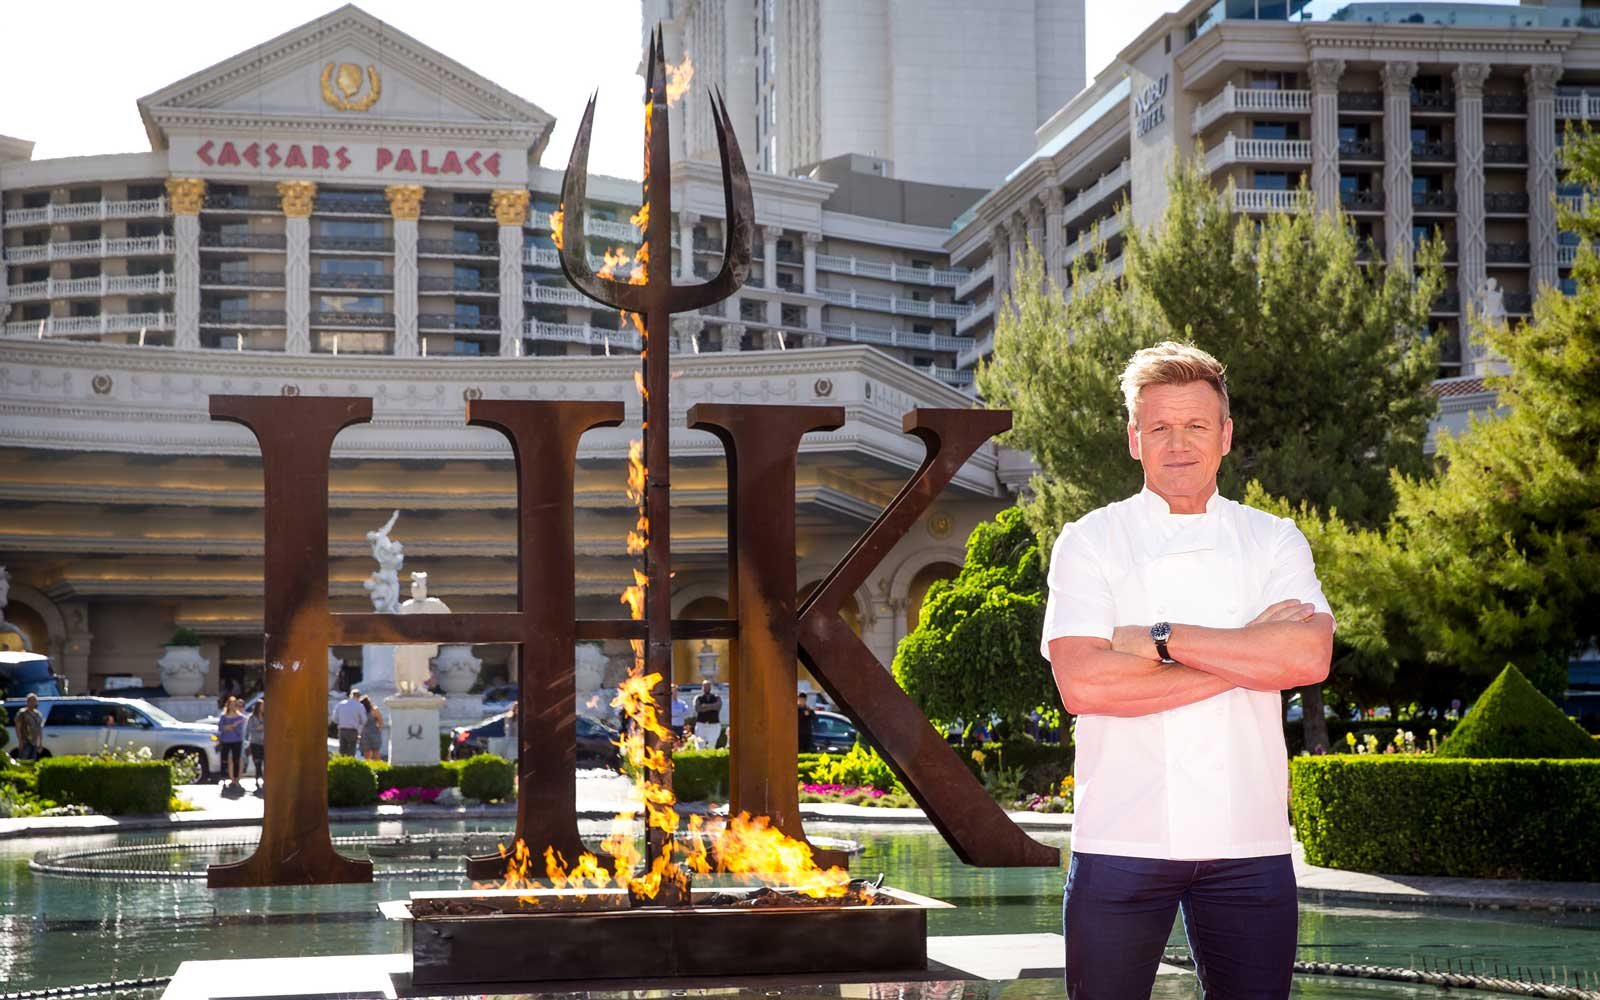 Gordon Ramsay opens Hell's Kitchen in Las Vegas at Caesar Palace